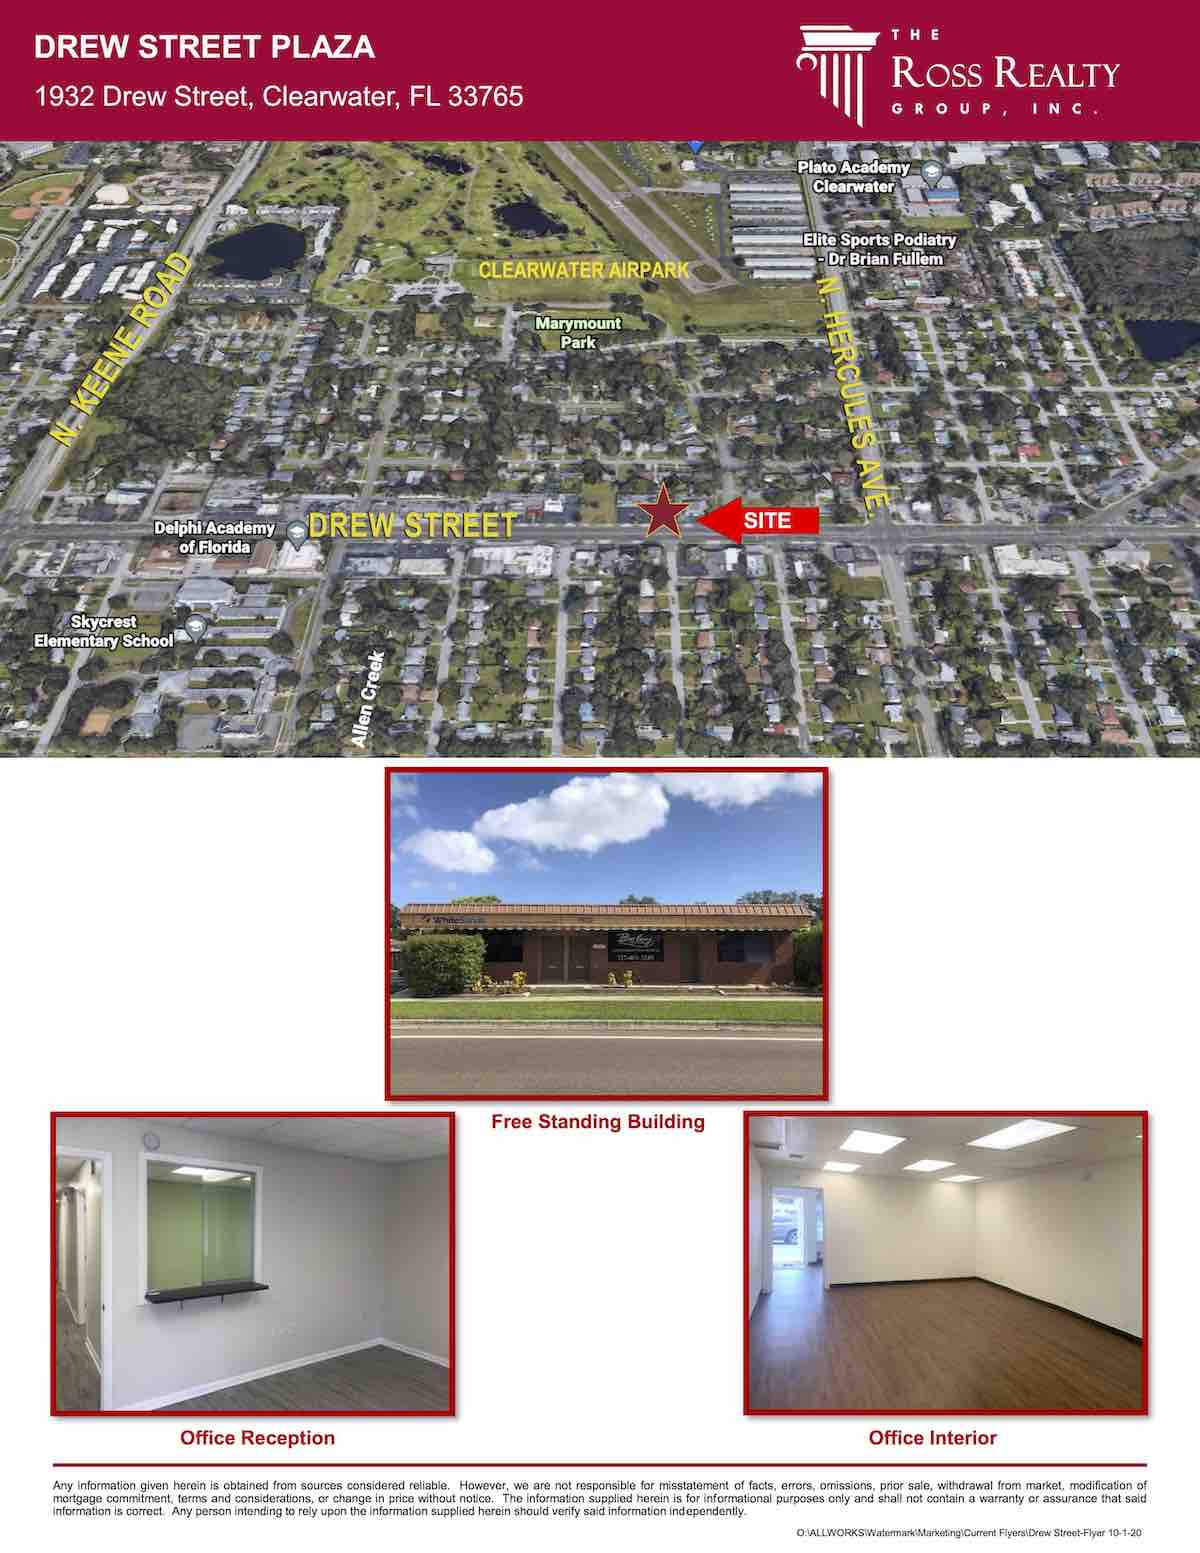 Tampa Commercial Real Estate - FOR SALE - Retail - Office Buildings - Drew Street Plaza - 1932 Drew Street, Clearwater, FL 33765 P2